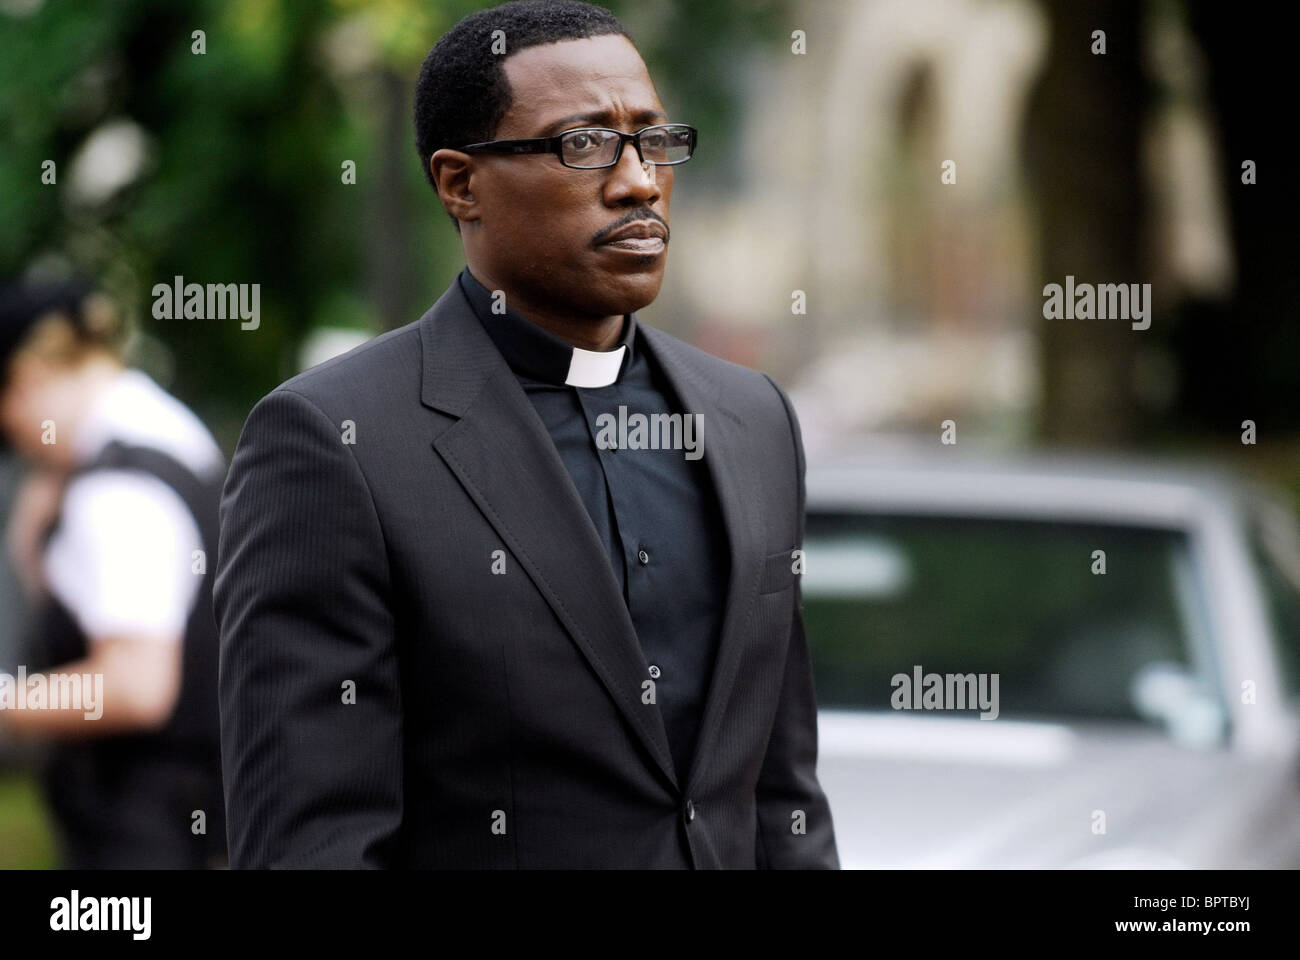 Wesley Snipes The Contractor 2007 Stock Photo 31269046 Alamy